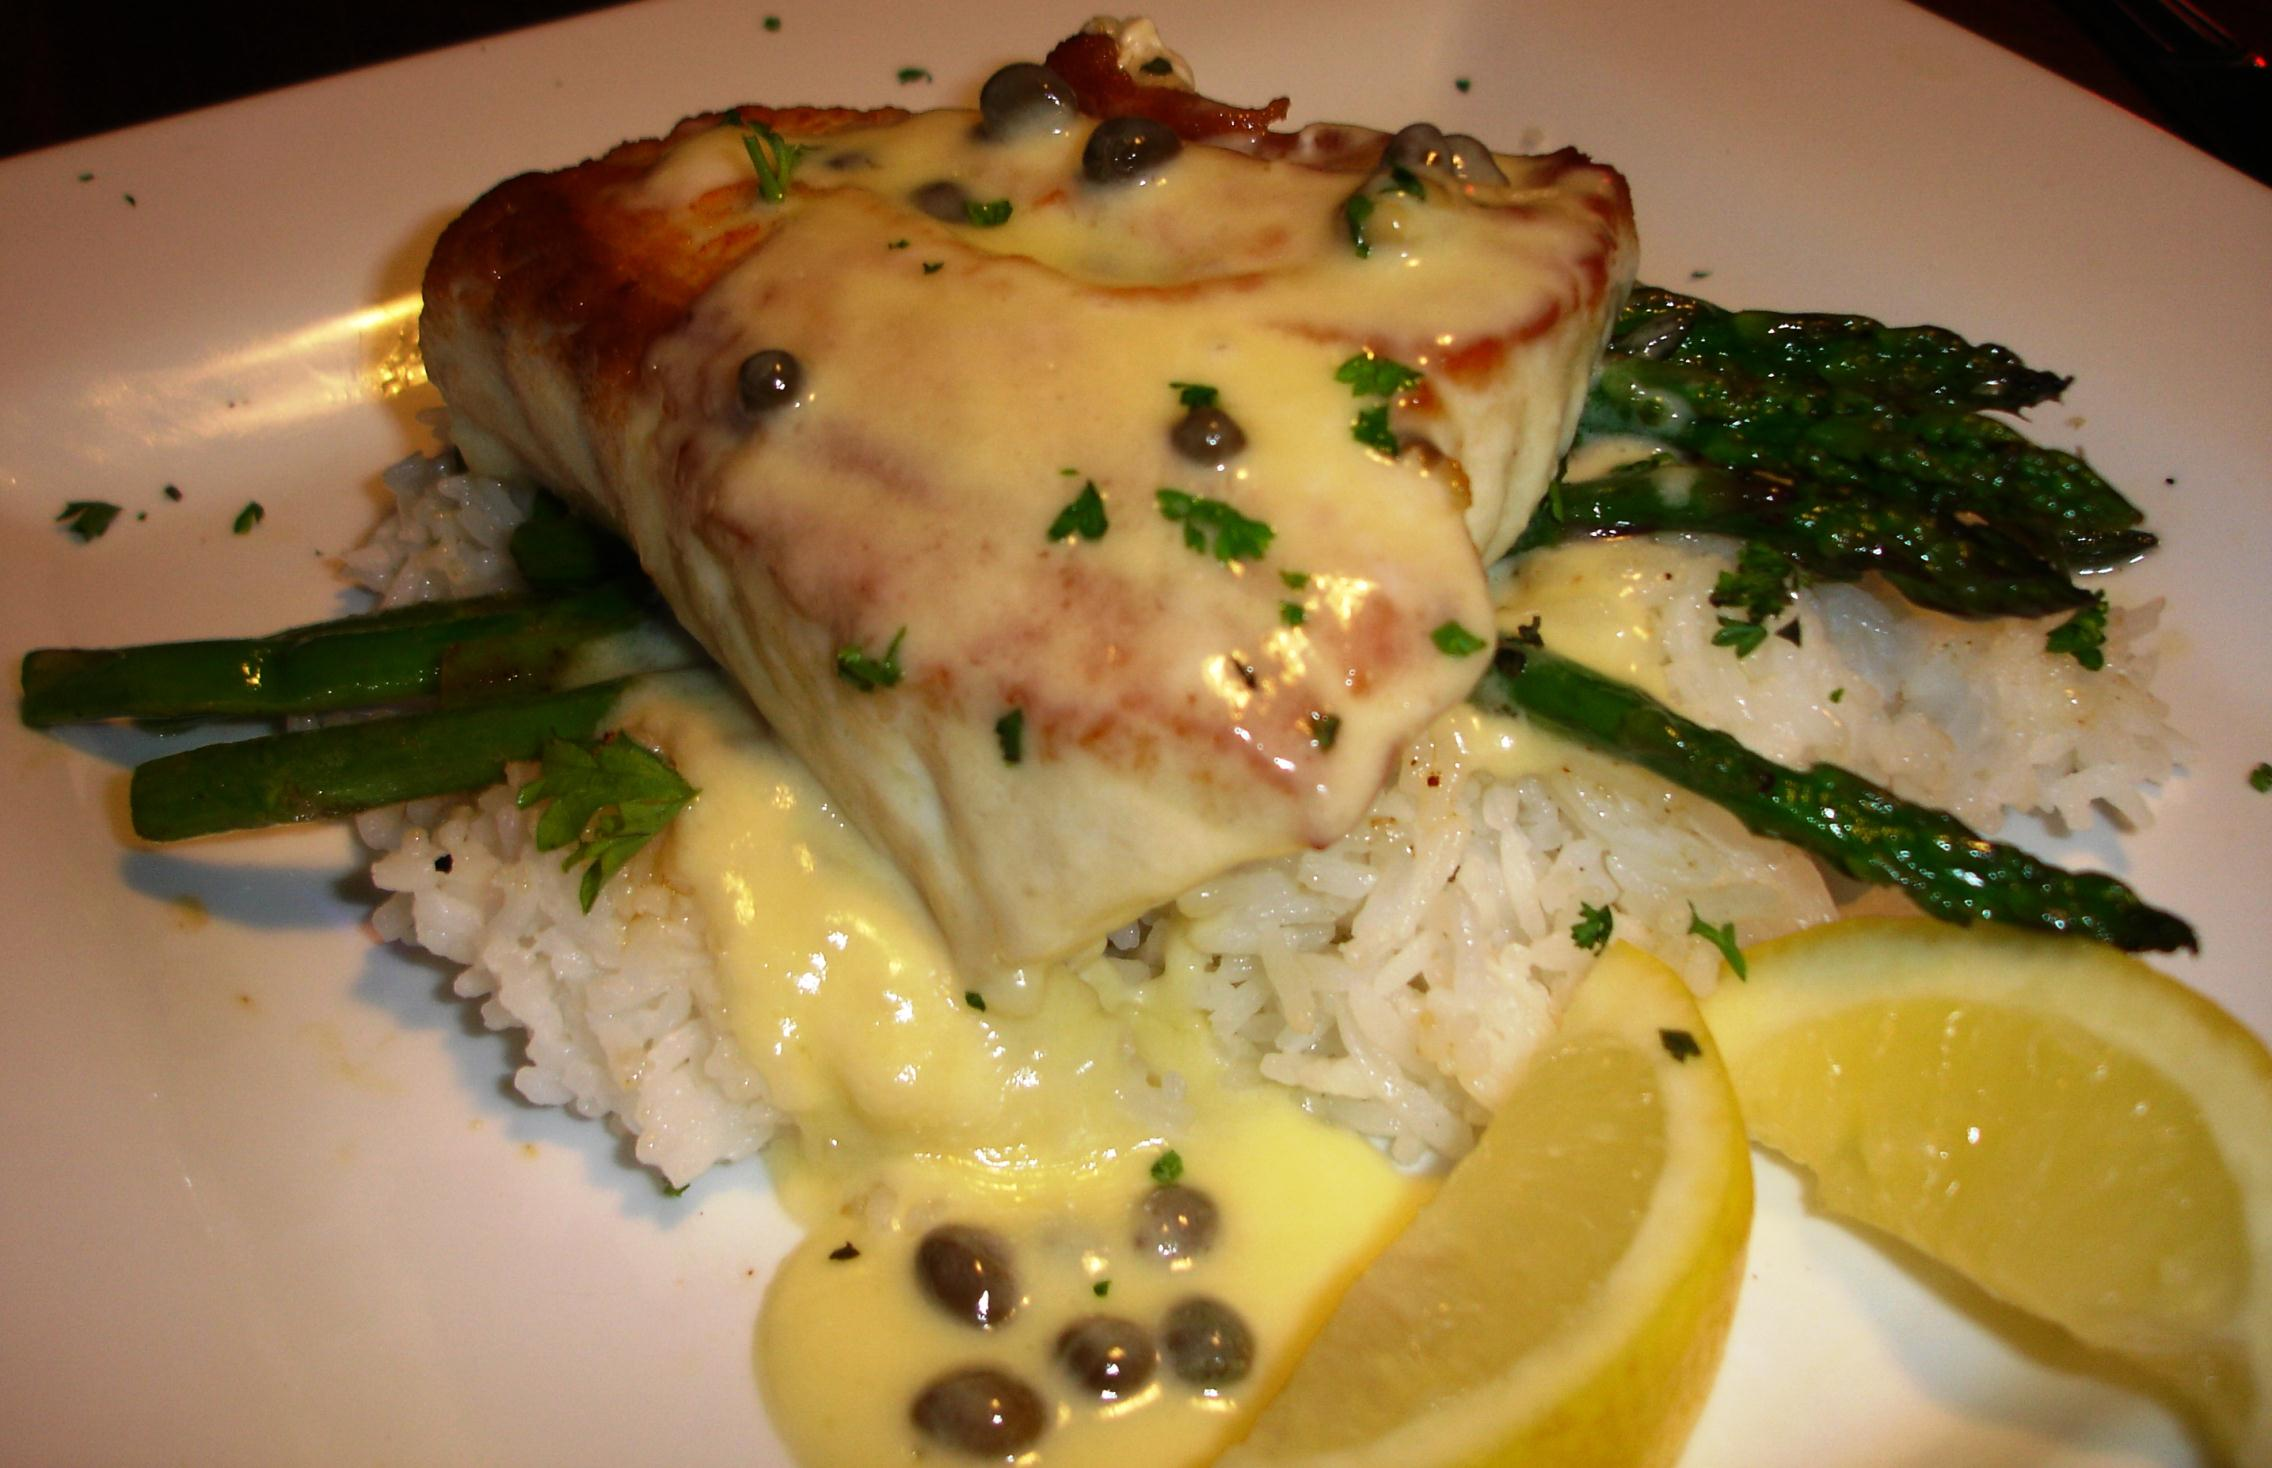 Halibut piccata is served over jasmine rice and in-season vegetables with a butter and caper sauce. The halibut is moist, meaty, and utterly fresh.